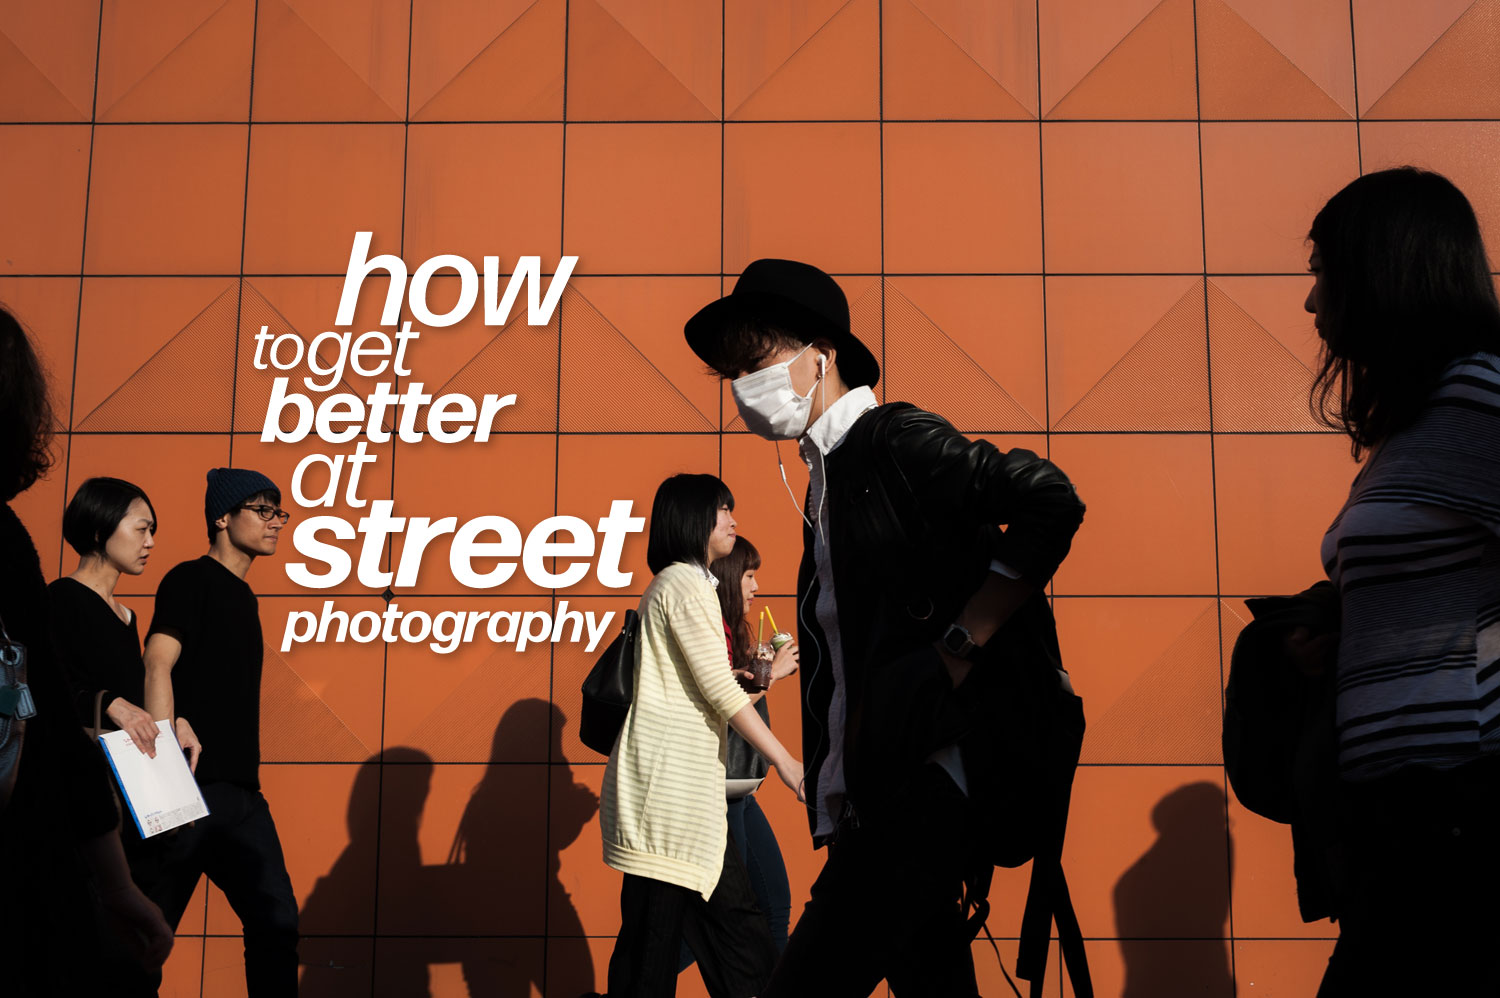 how-to-get-better-street-photography-0.jpg